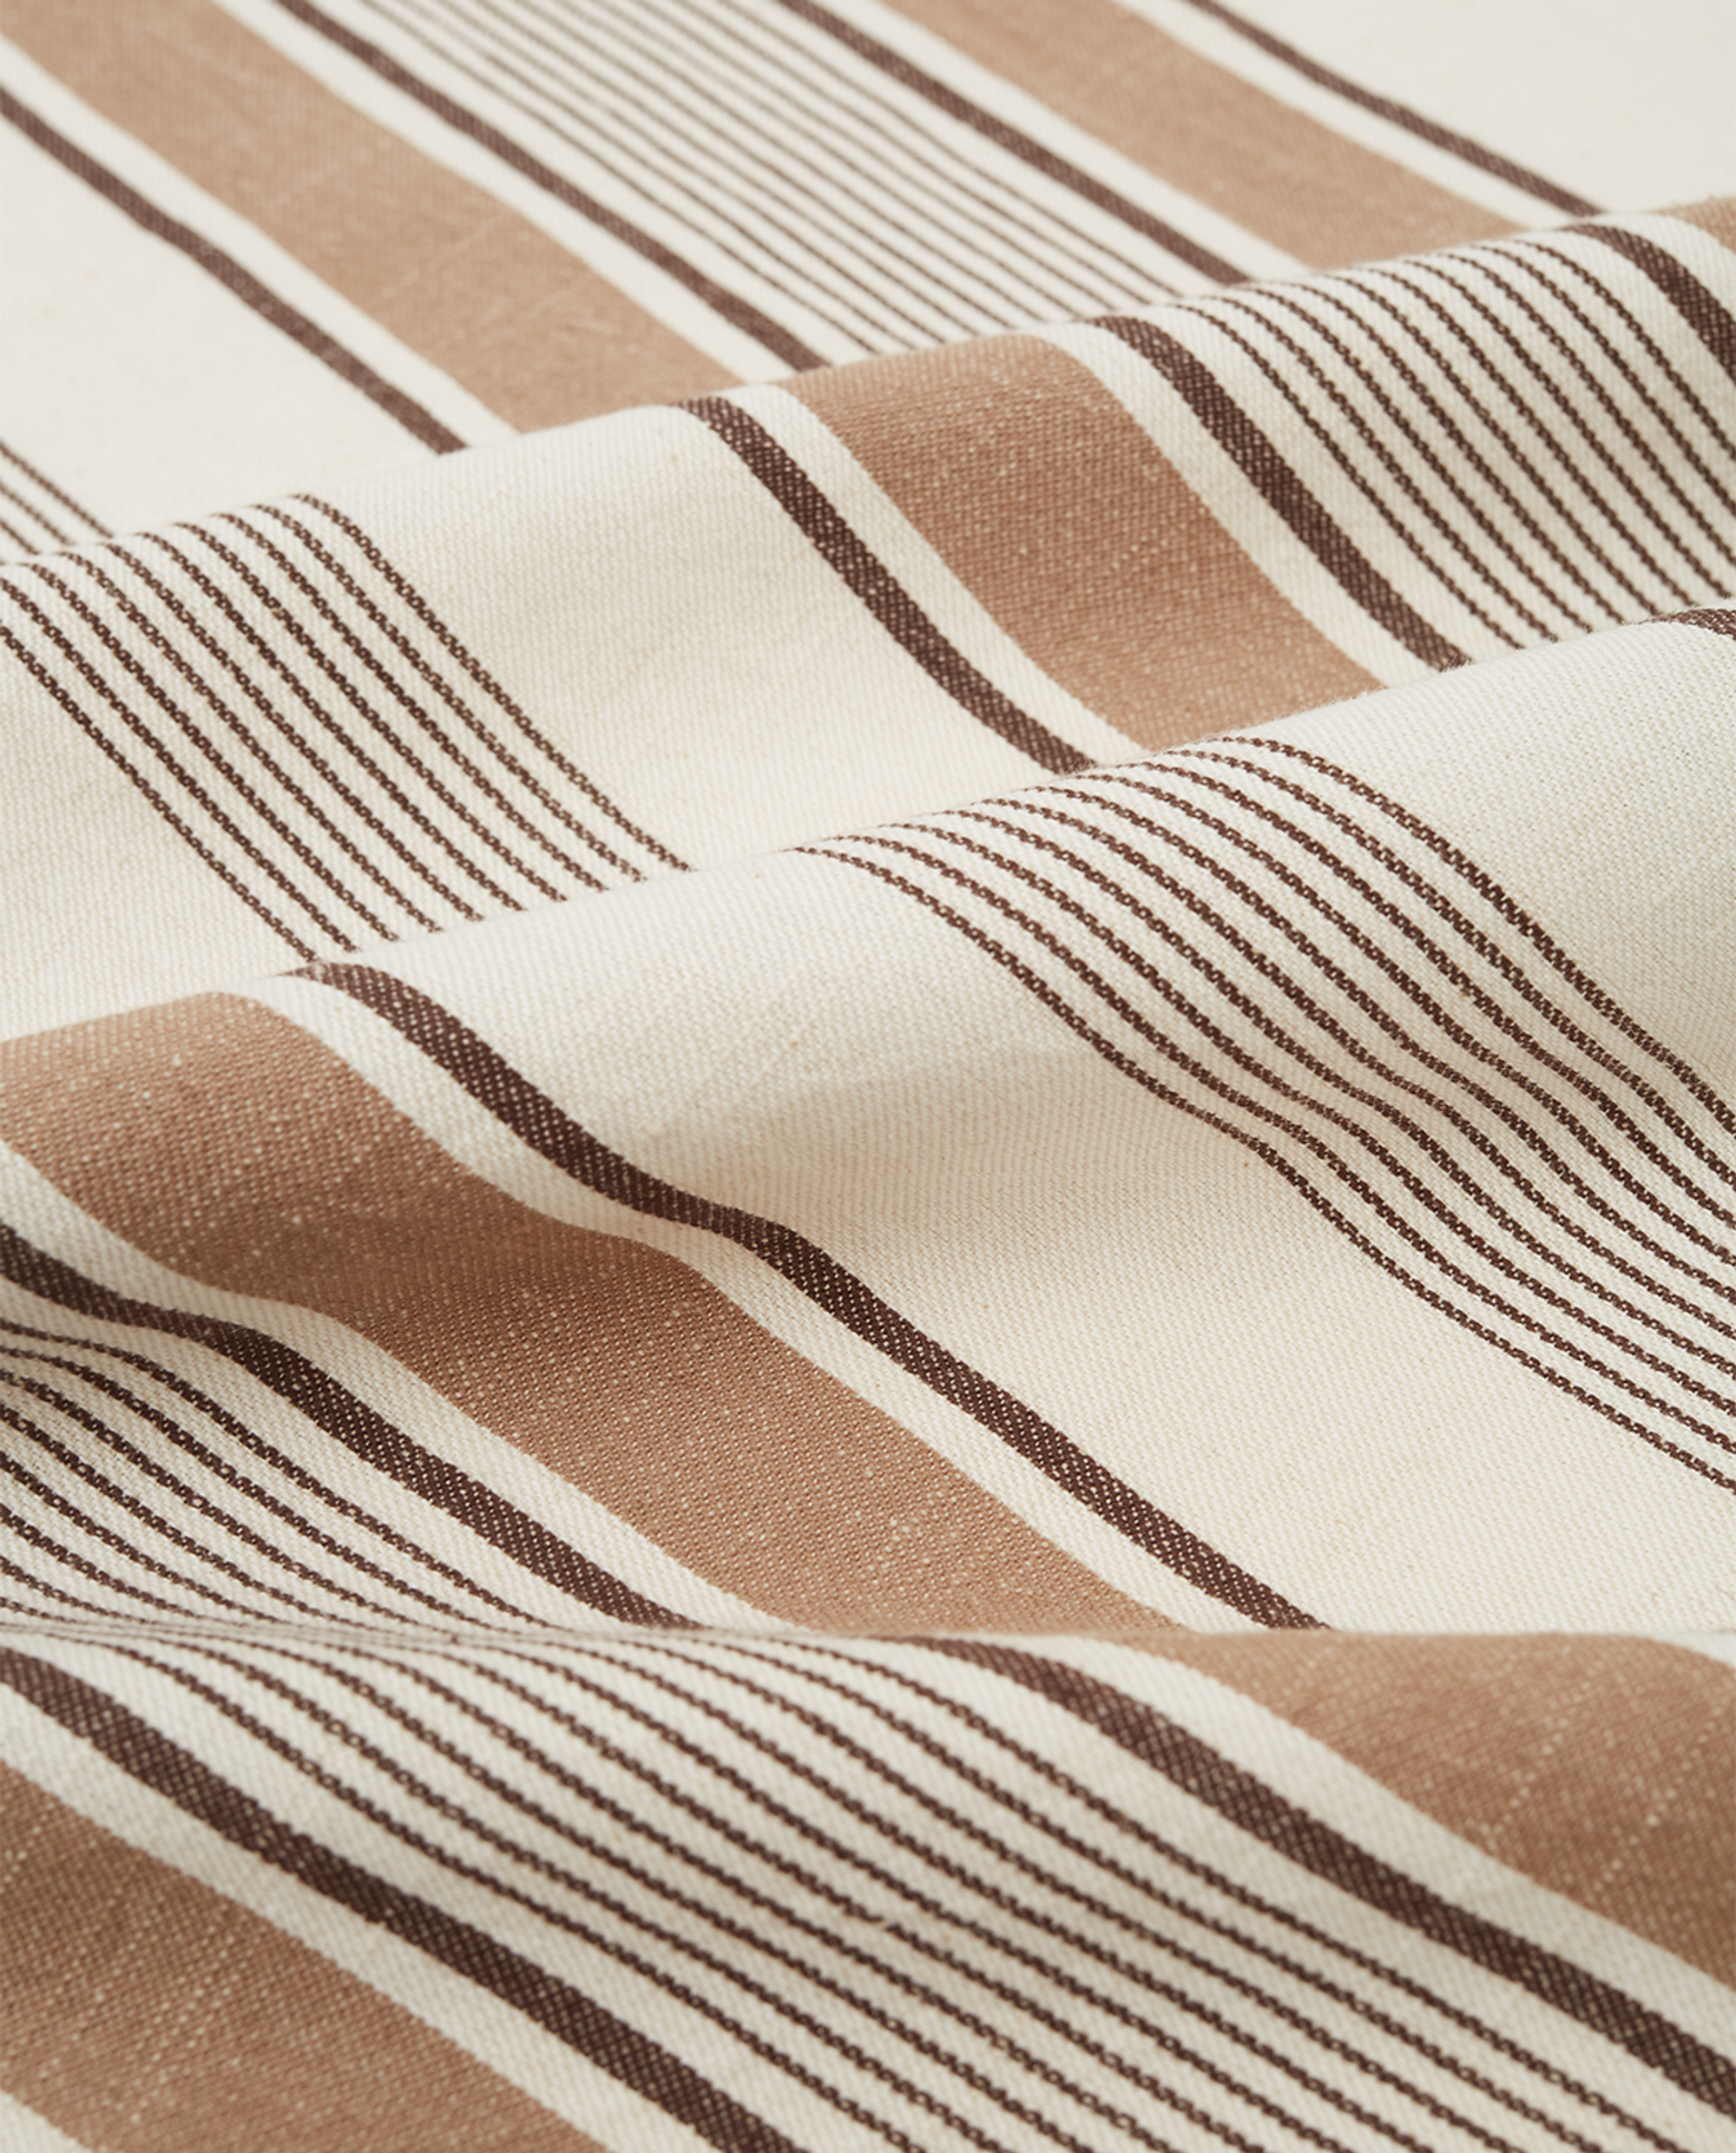 Striped Cotton Twill Kitchen Towel, White/Beige